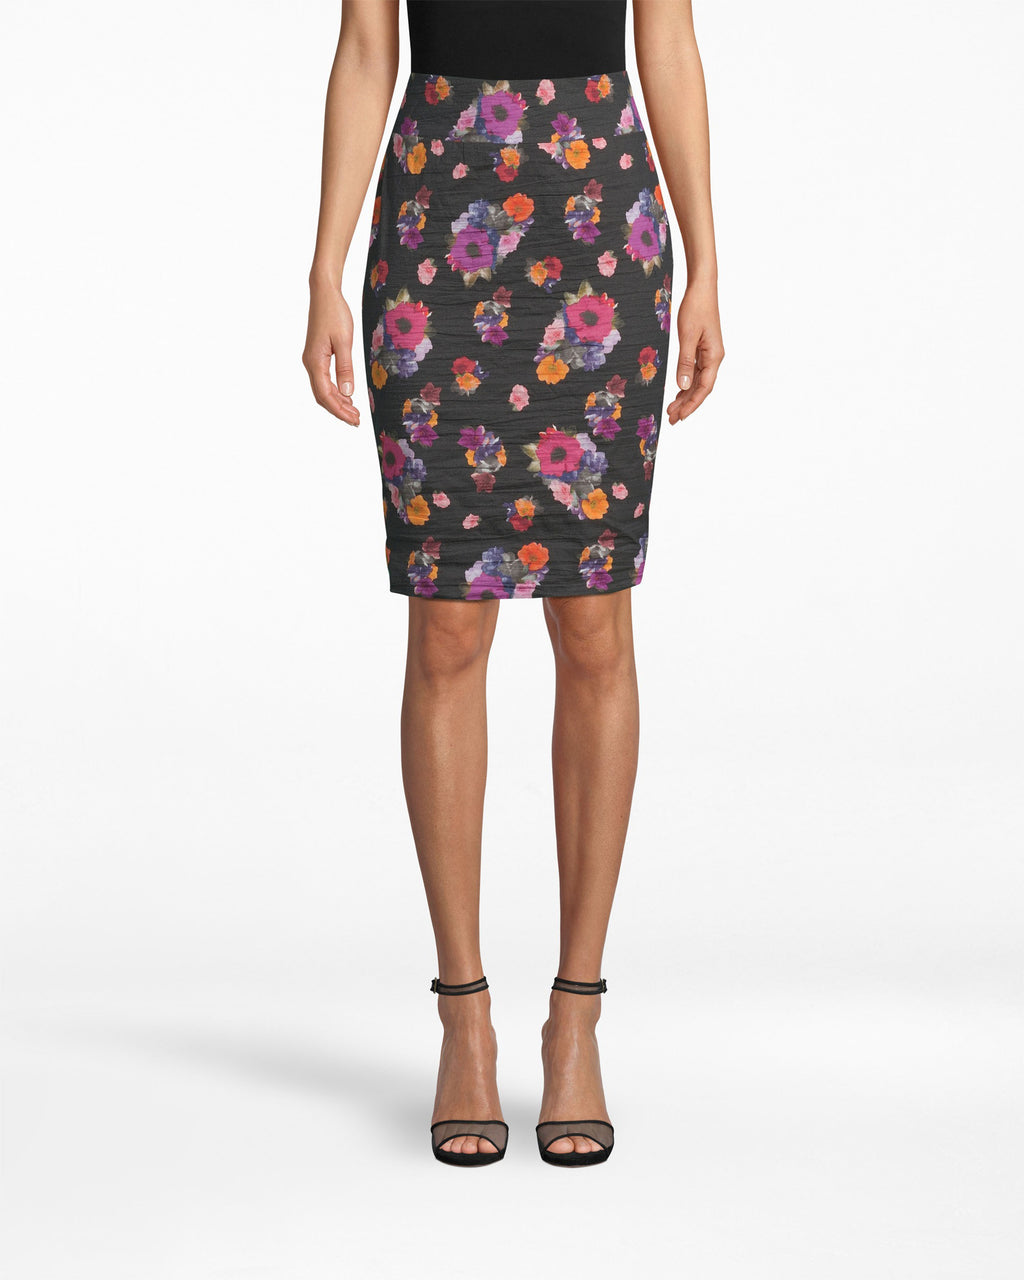 BH20049 - BOUQUET BEAUTY COTTON METAL SKIRT - bottoms - skirts - Our Bouquet Beauty print is growing on this figure-flattering pencil skirt, designed in our iconic Cotton Metal.